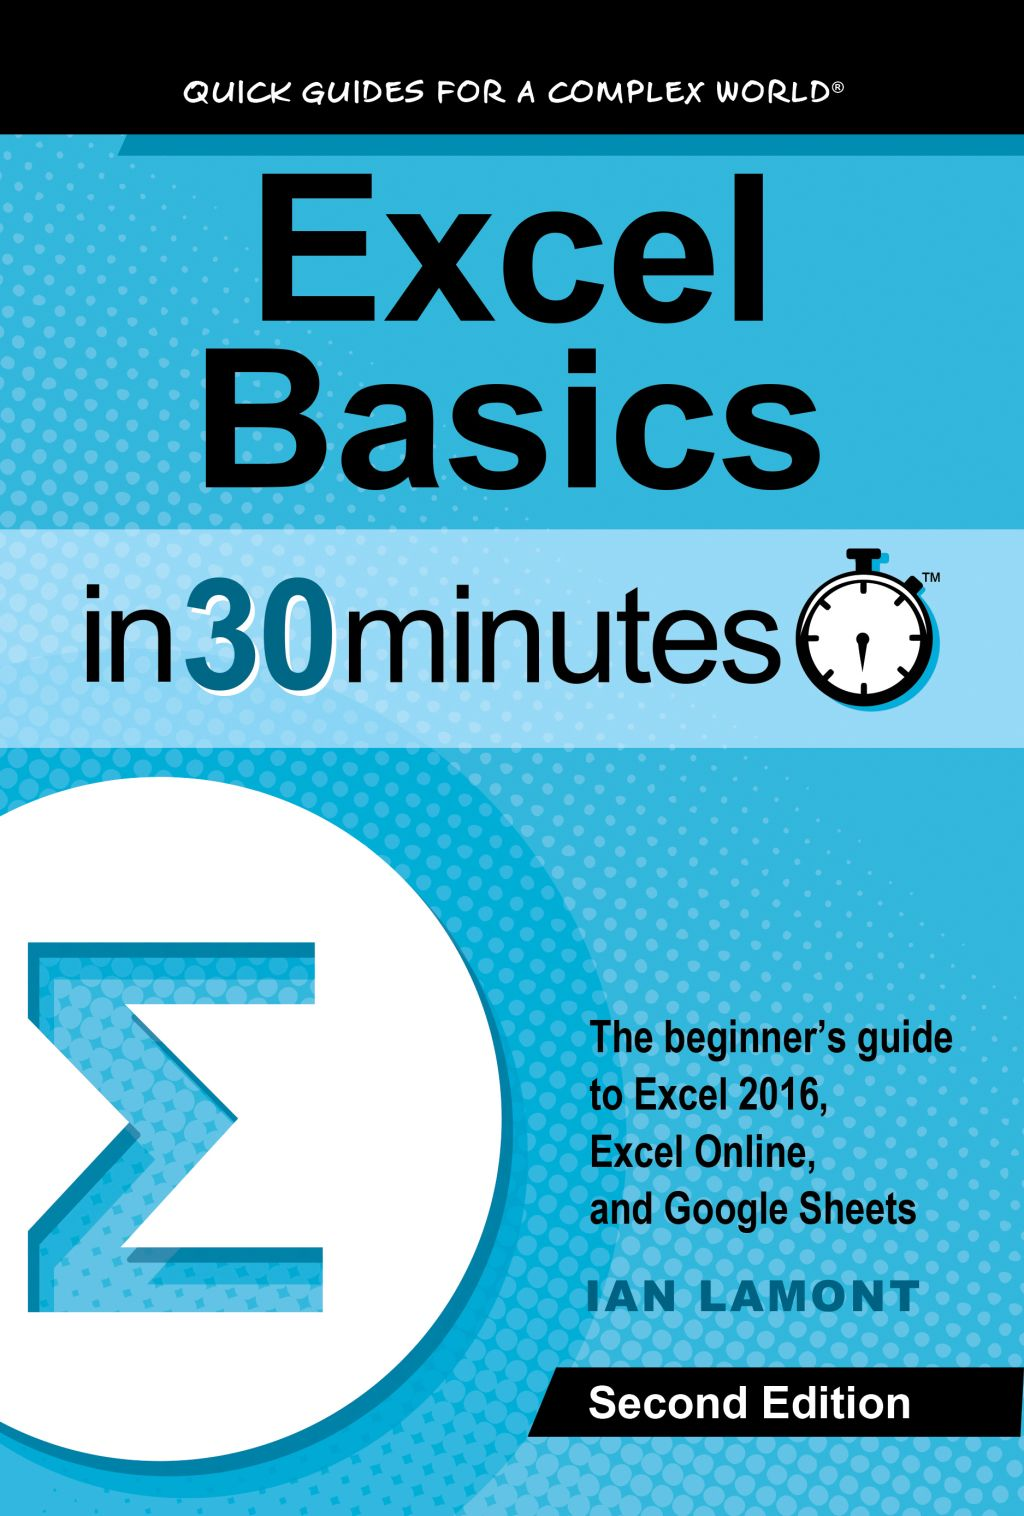 Excel Basics In 30 Minutes (2nd Edition) The beginner's